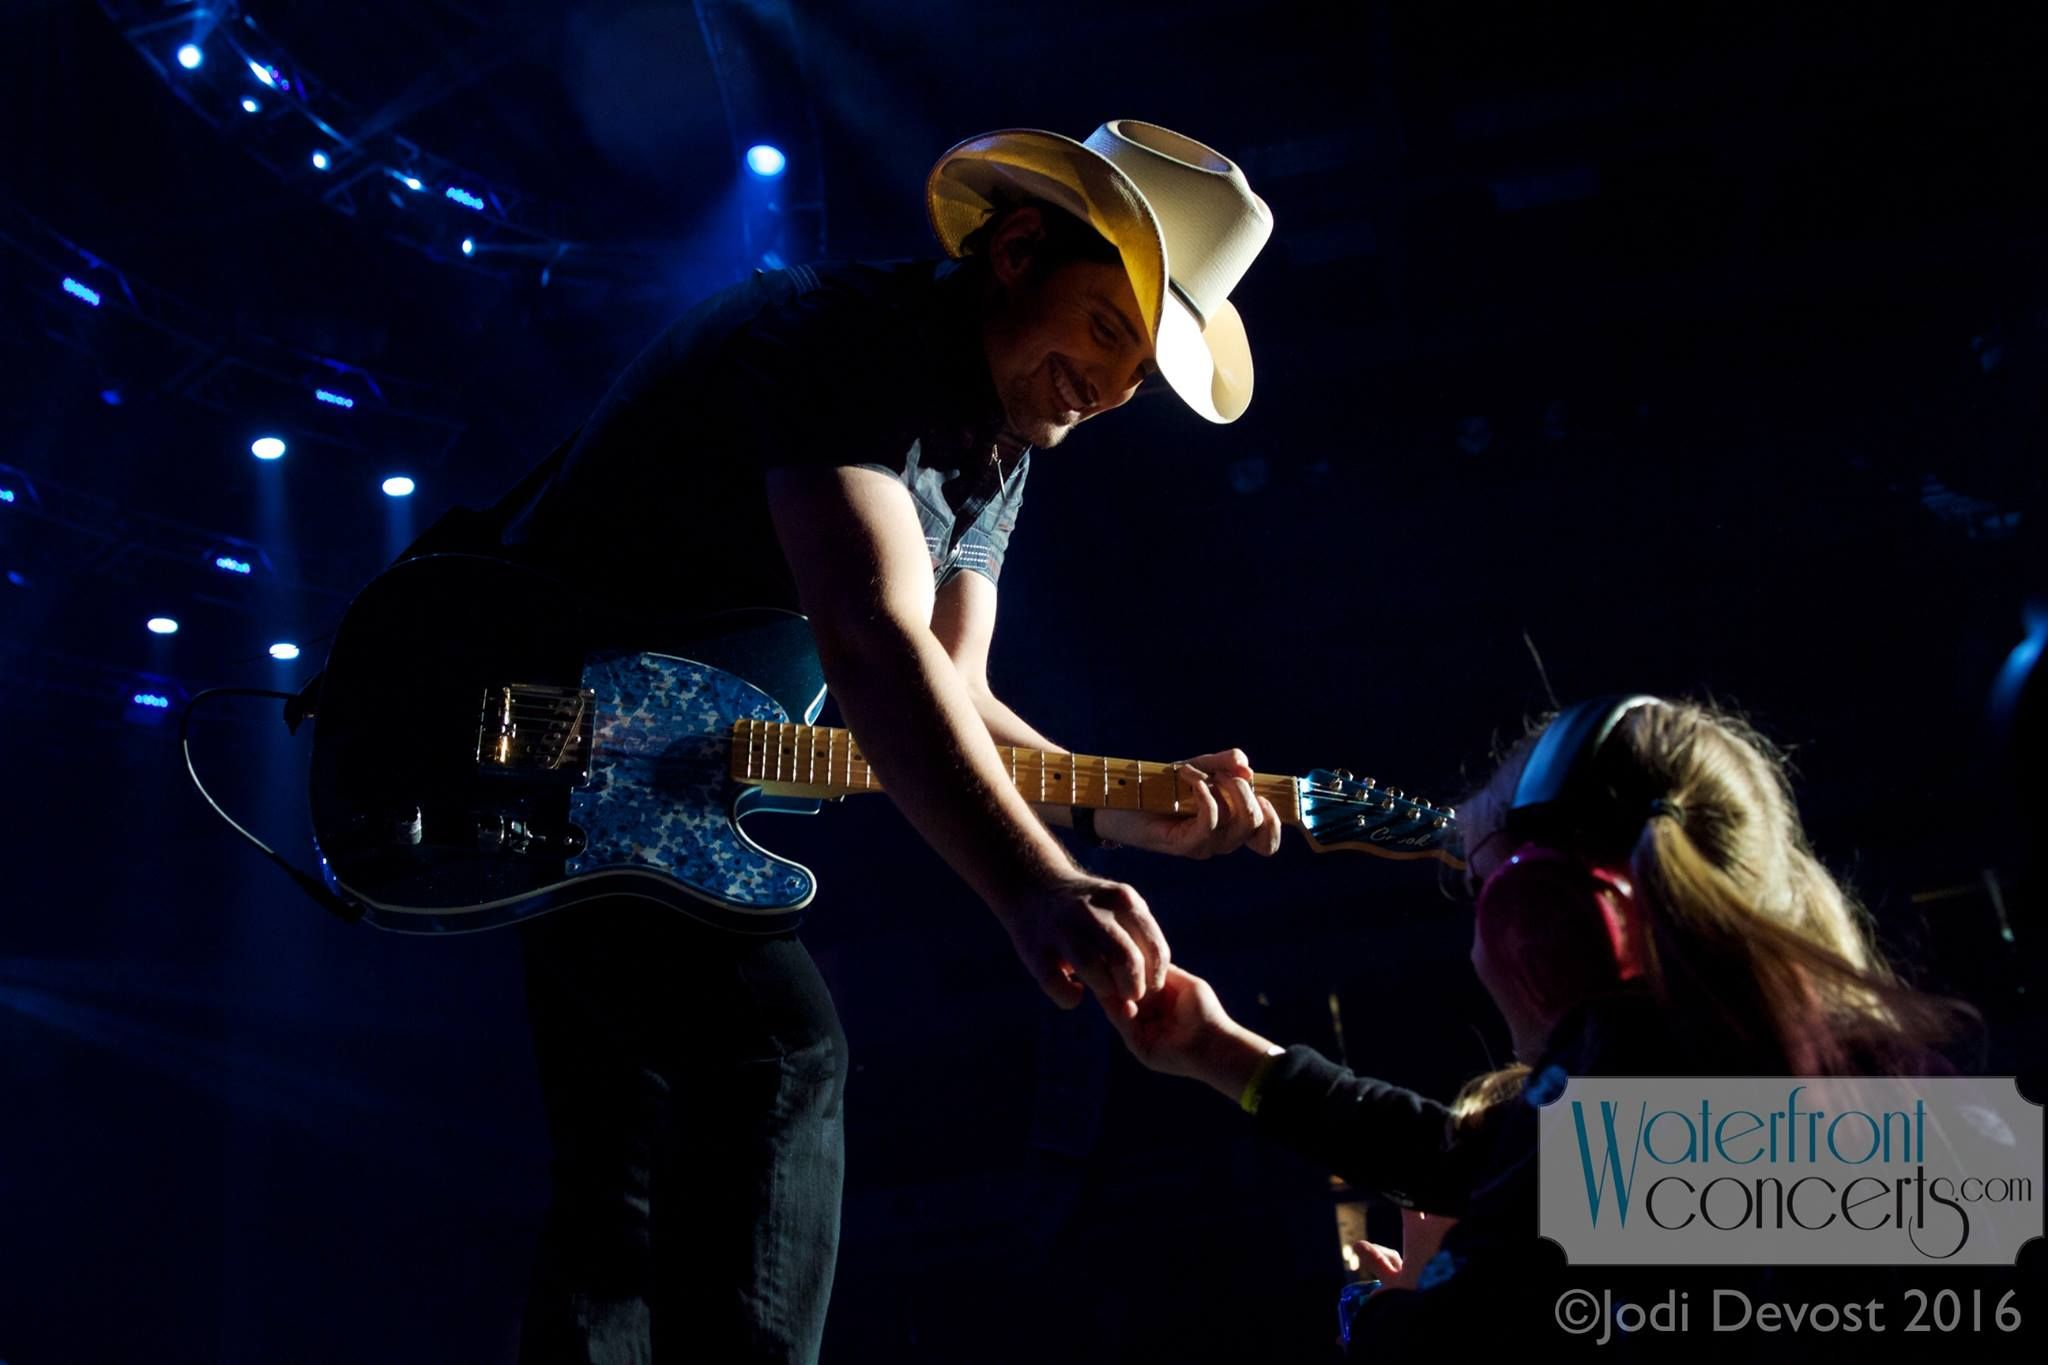 Brad paisley performing at cross insurance center in